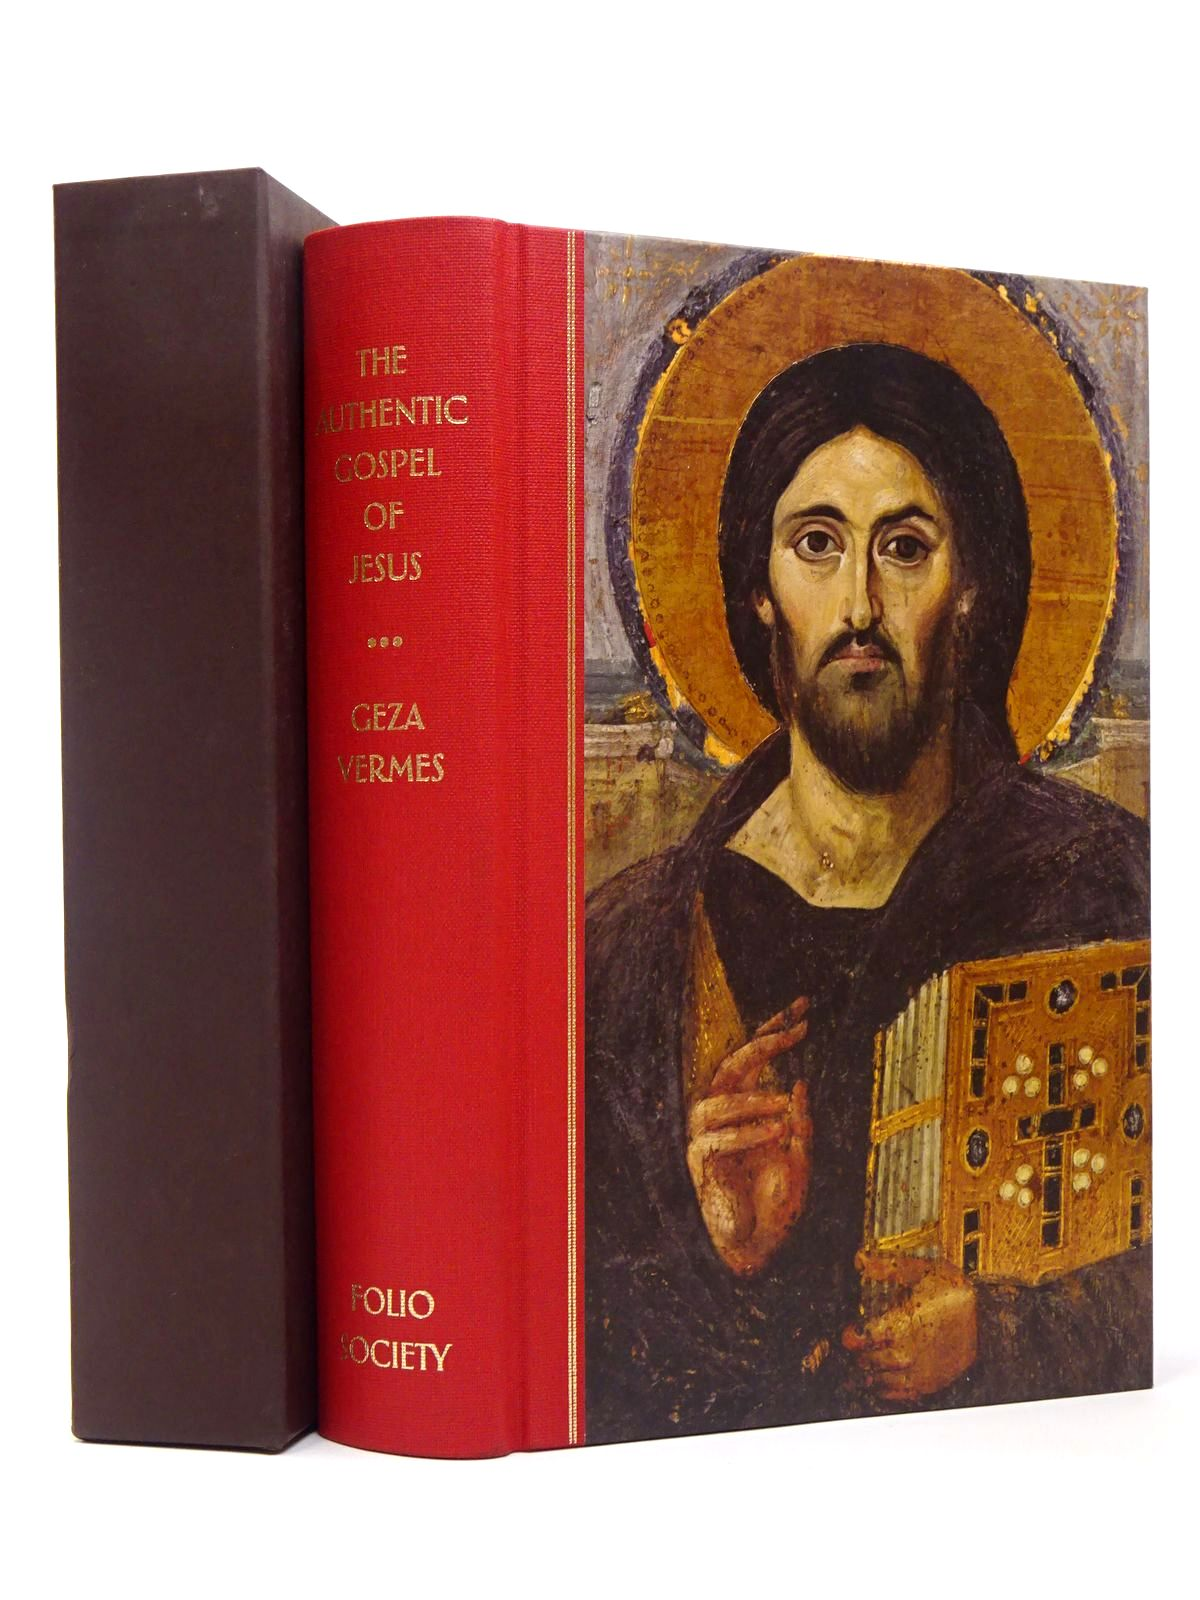 Photo of THE  AUTHENTIC GOSPEL OF JESUS written by Vermes, Geza published by Folio Society (STOCK CODE: 1817349)  for sale by Stella & Rose's Books